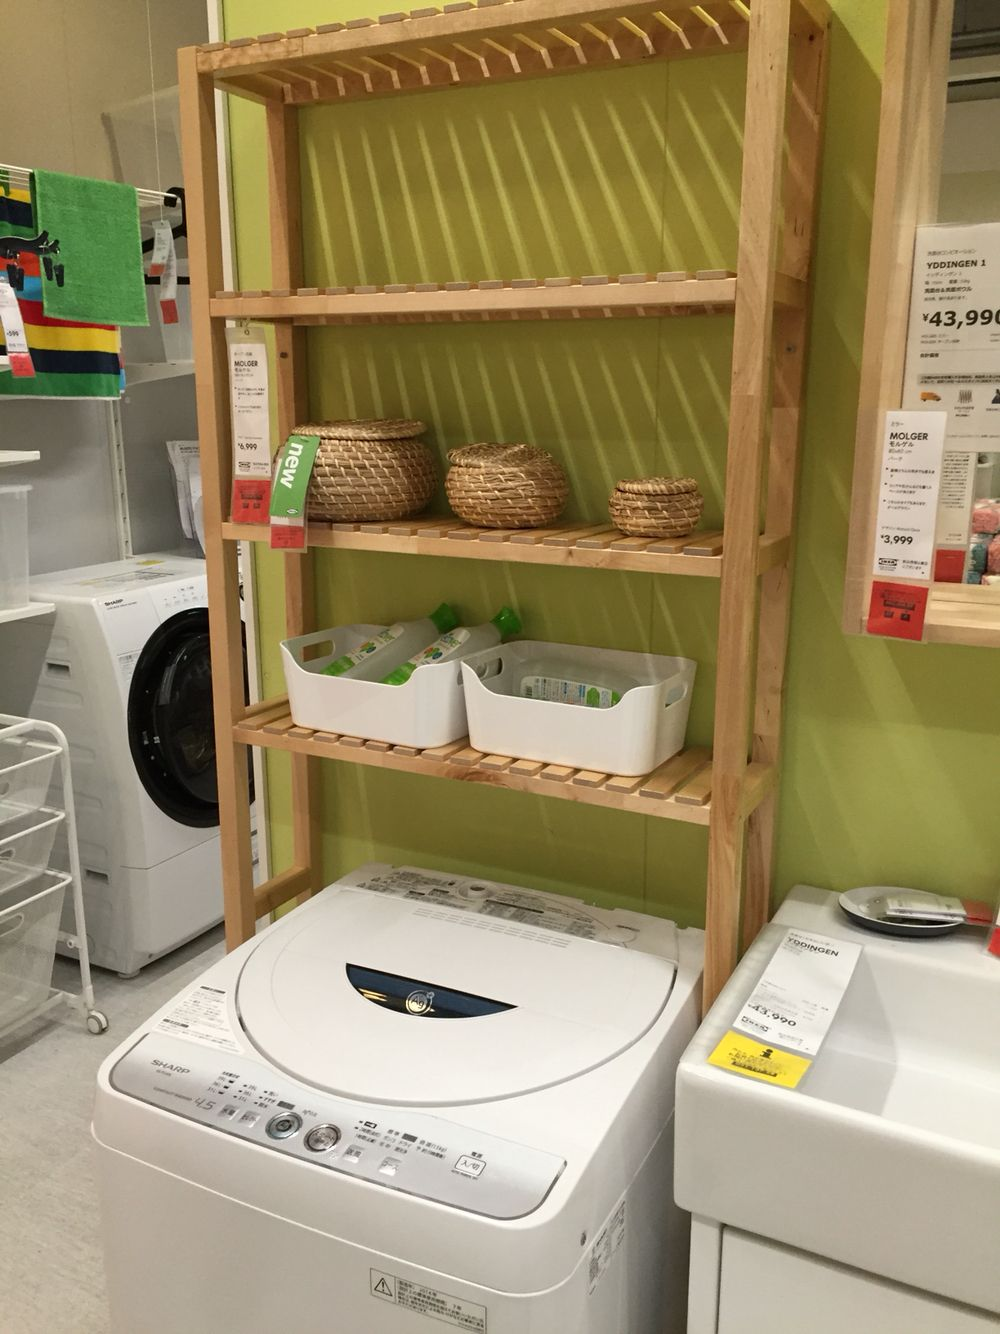 Ikea Badezimmer Waschmaschine Ikea Above Washing Machine Wooden Shelf Badezimmer In 2019